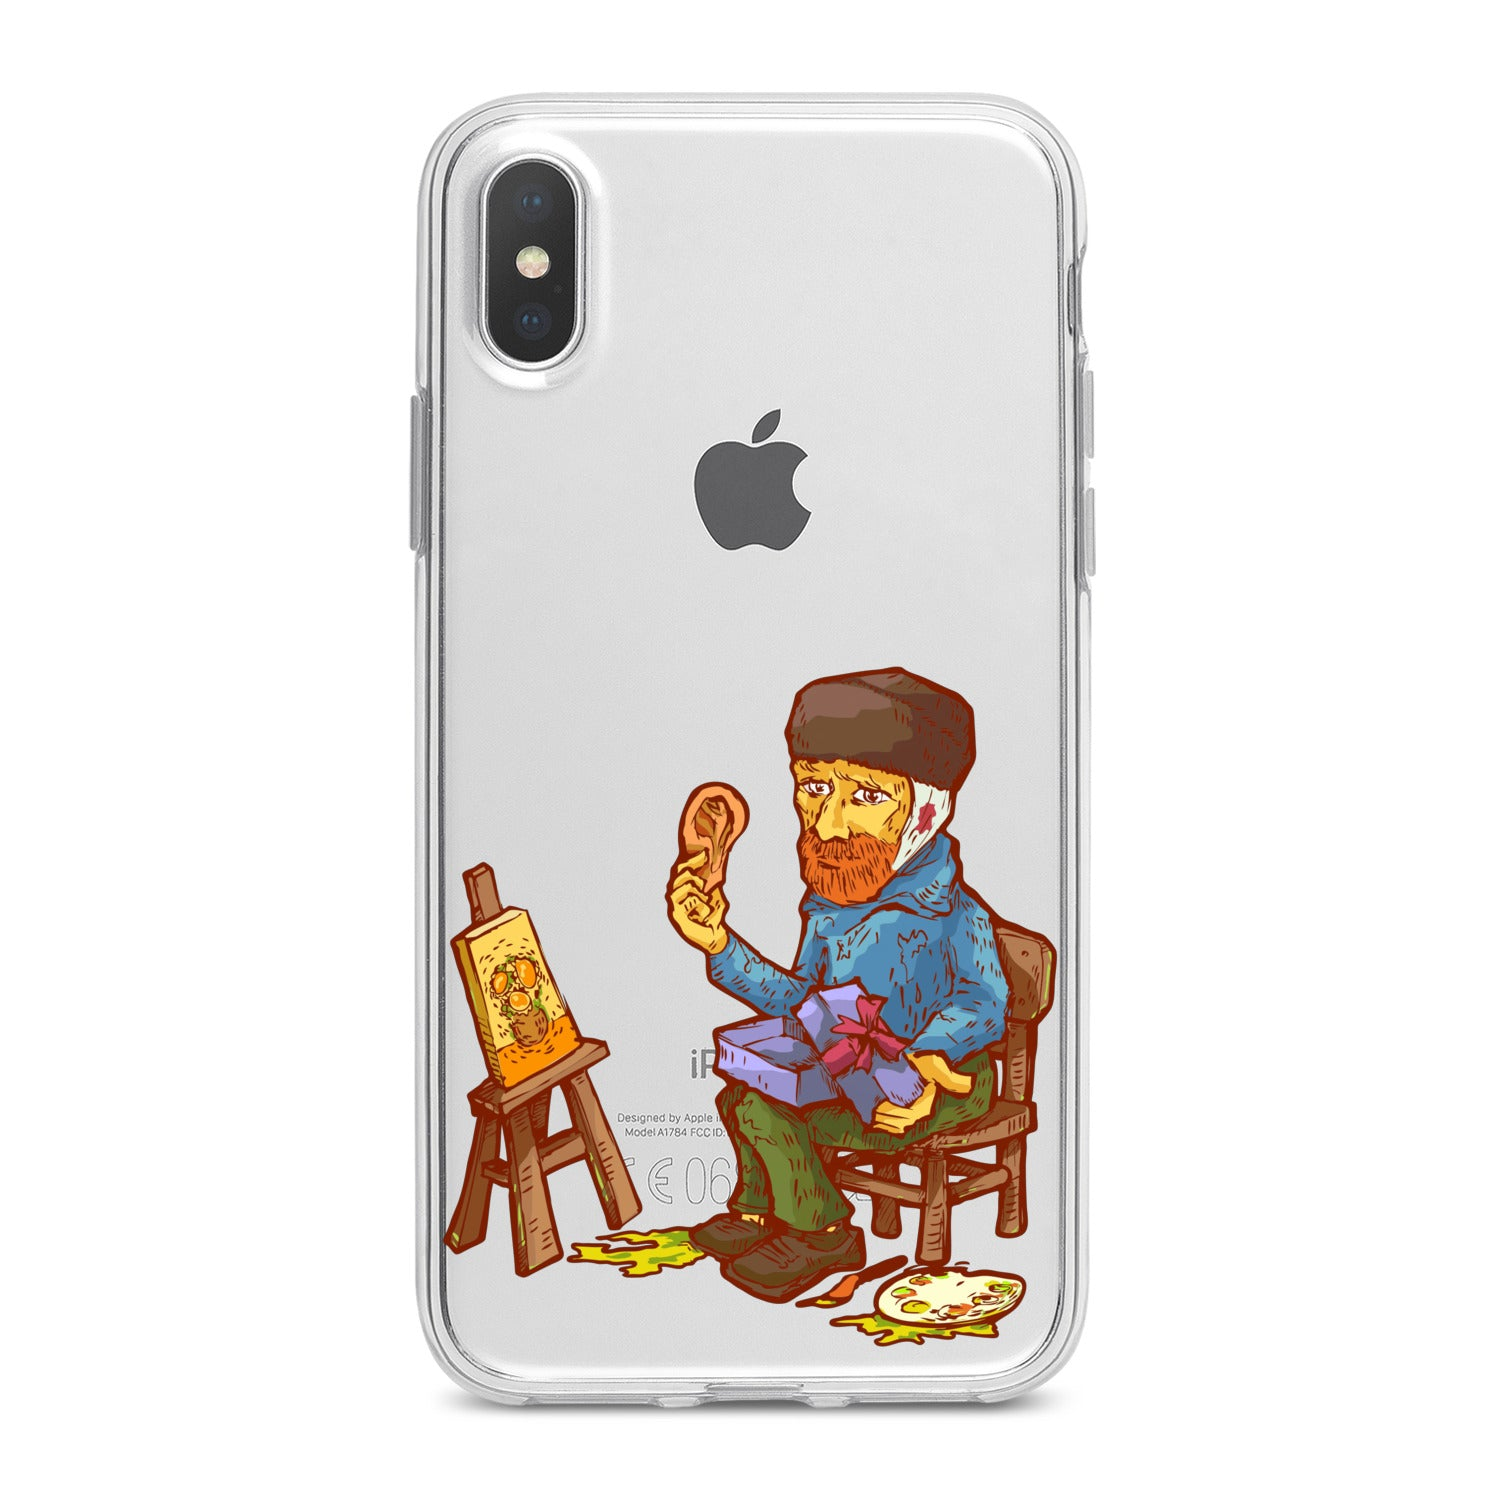 Lex Altern Artist Creation Phone Case for your iPhone & Android phone.